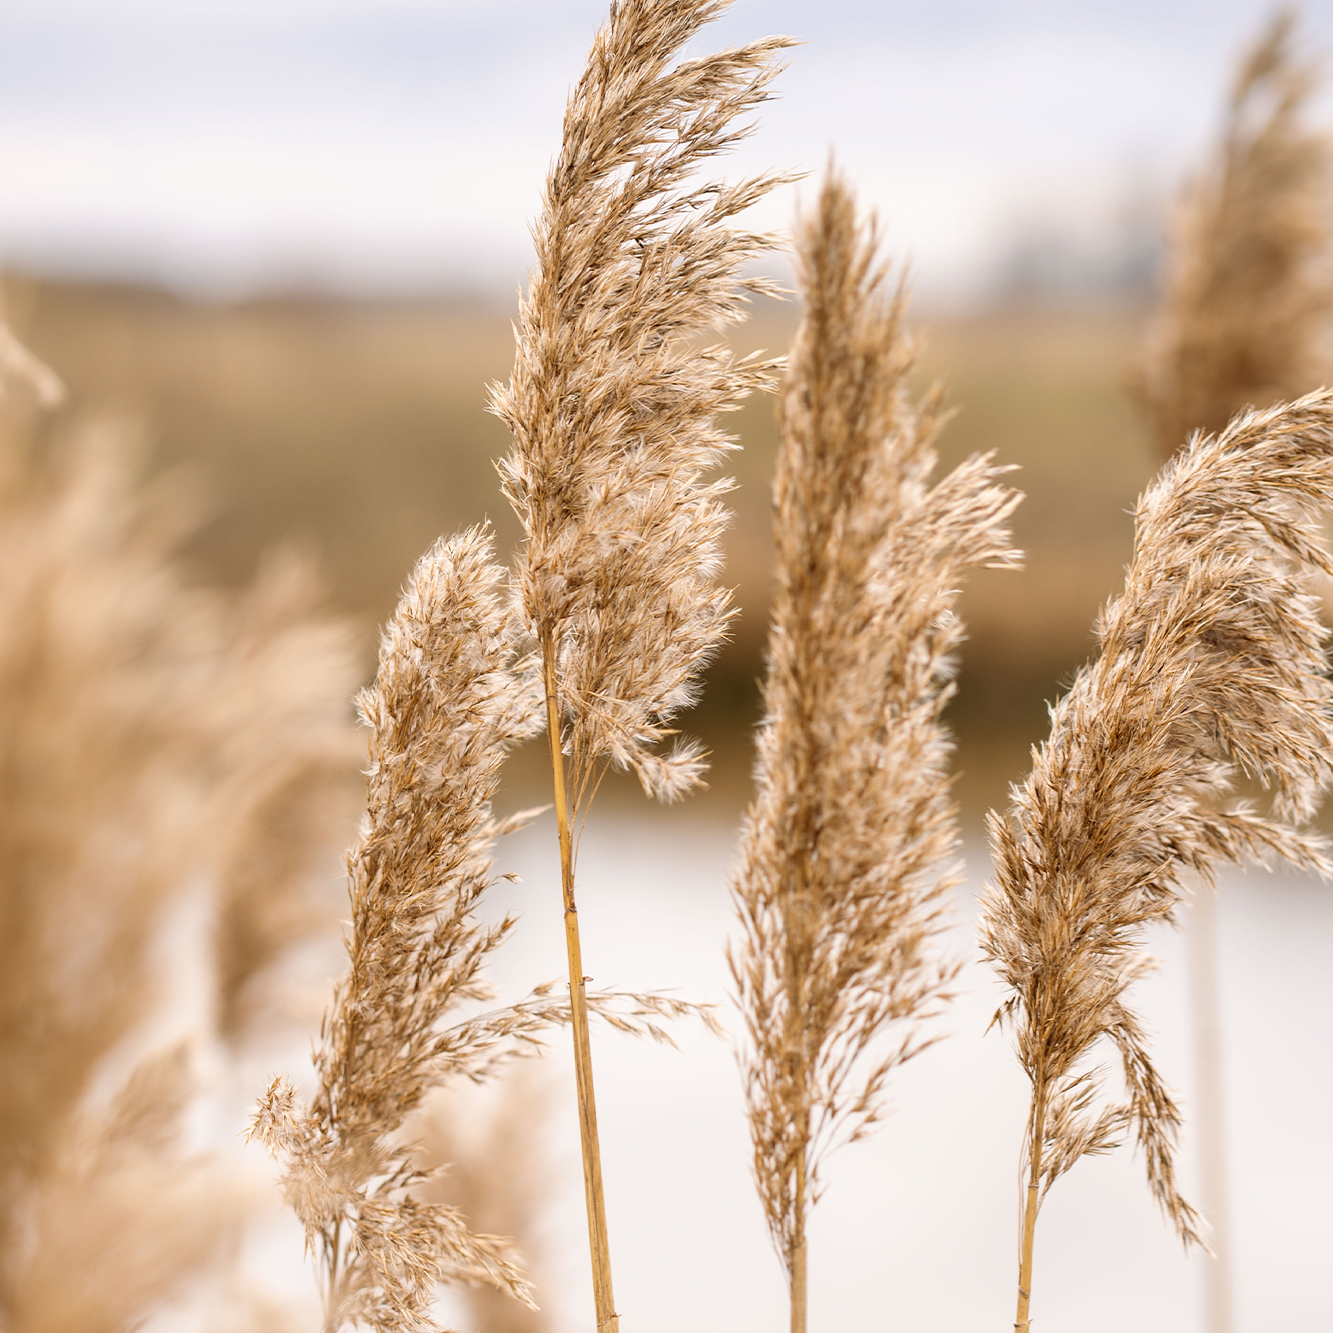 Pampas grass outdoors blowing in wind